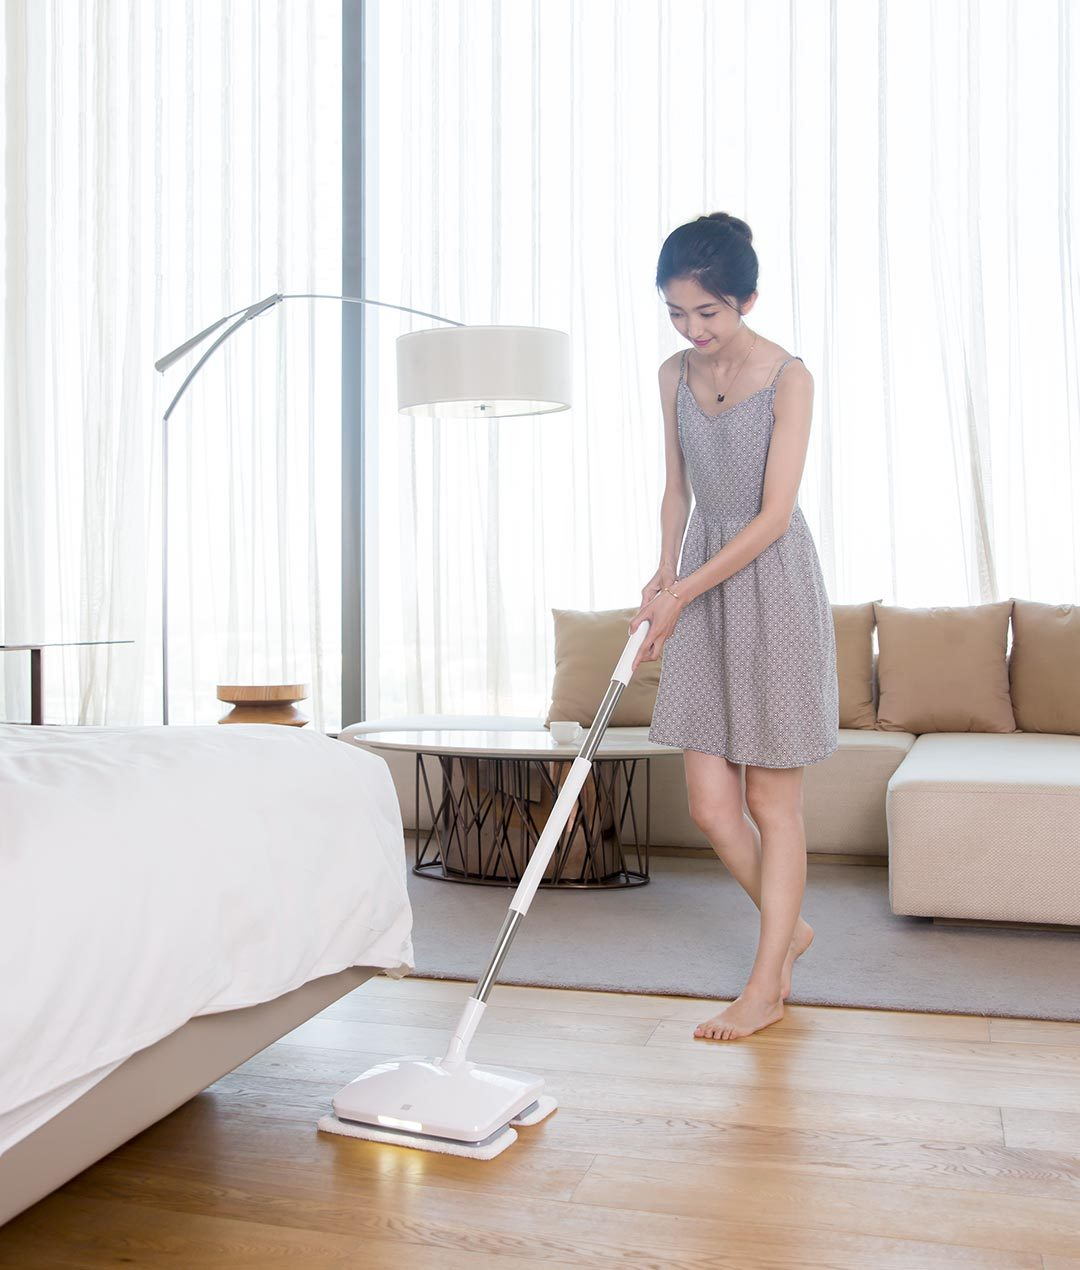 SWDK Полотер/Электрошвабра Handheld Electric Mop White Mi прибирання